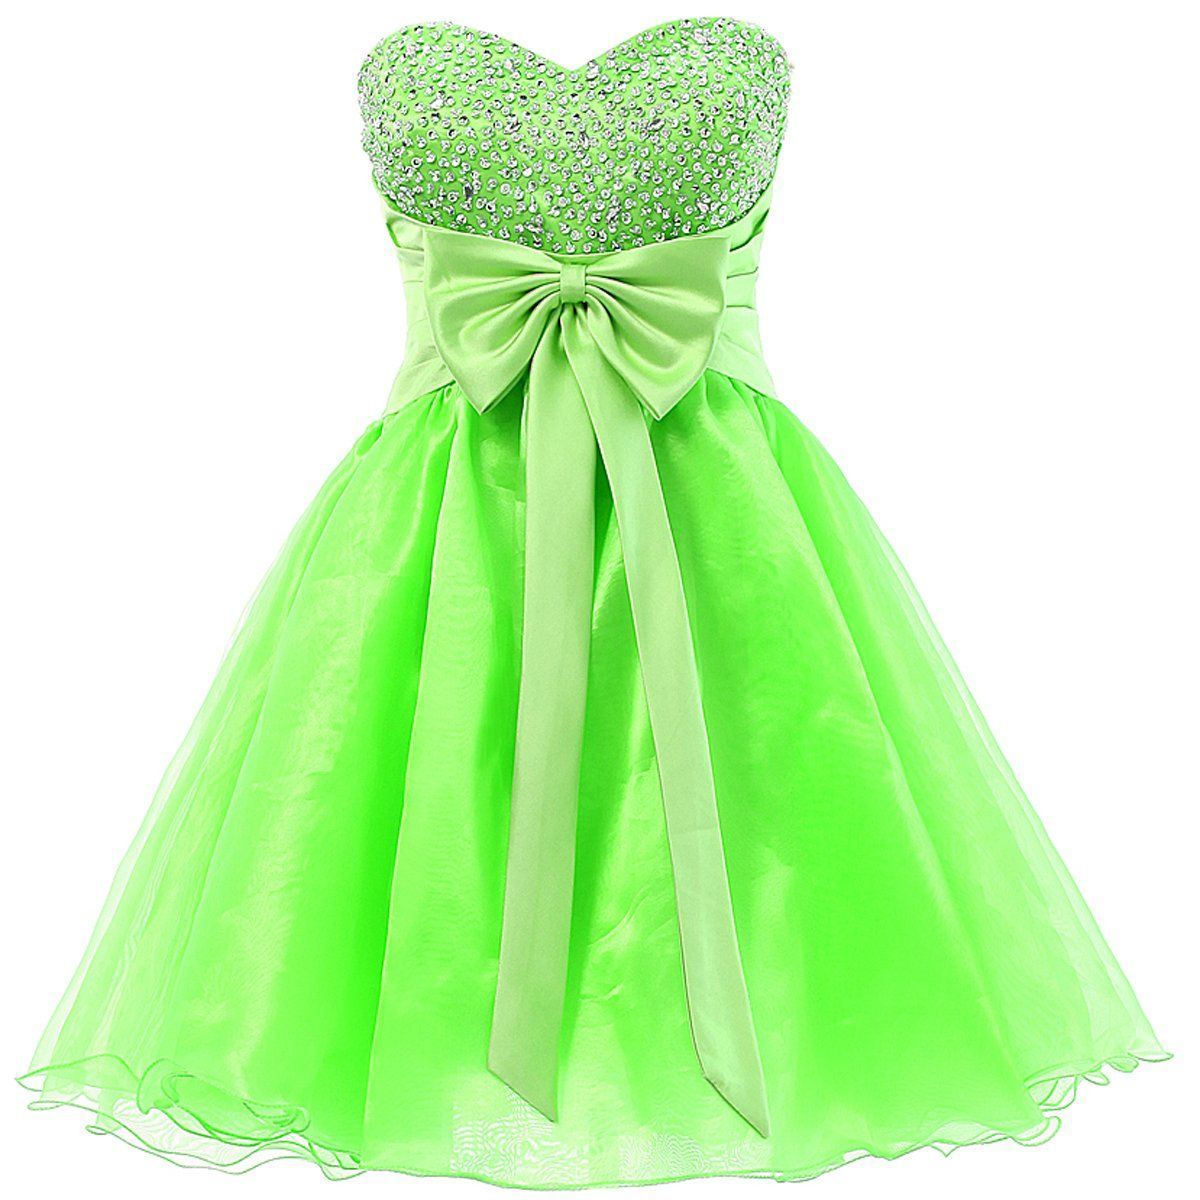 Mcneal sweetheart beaded homecoming dresses backless short prom